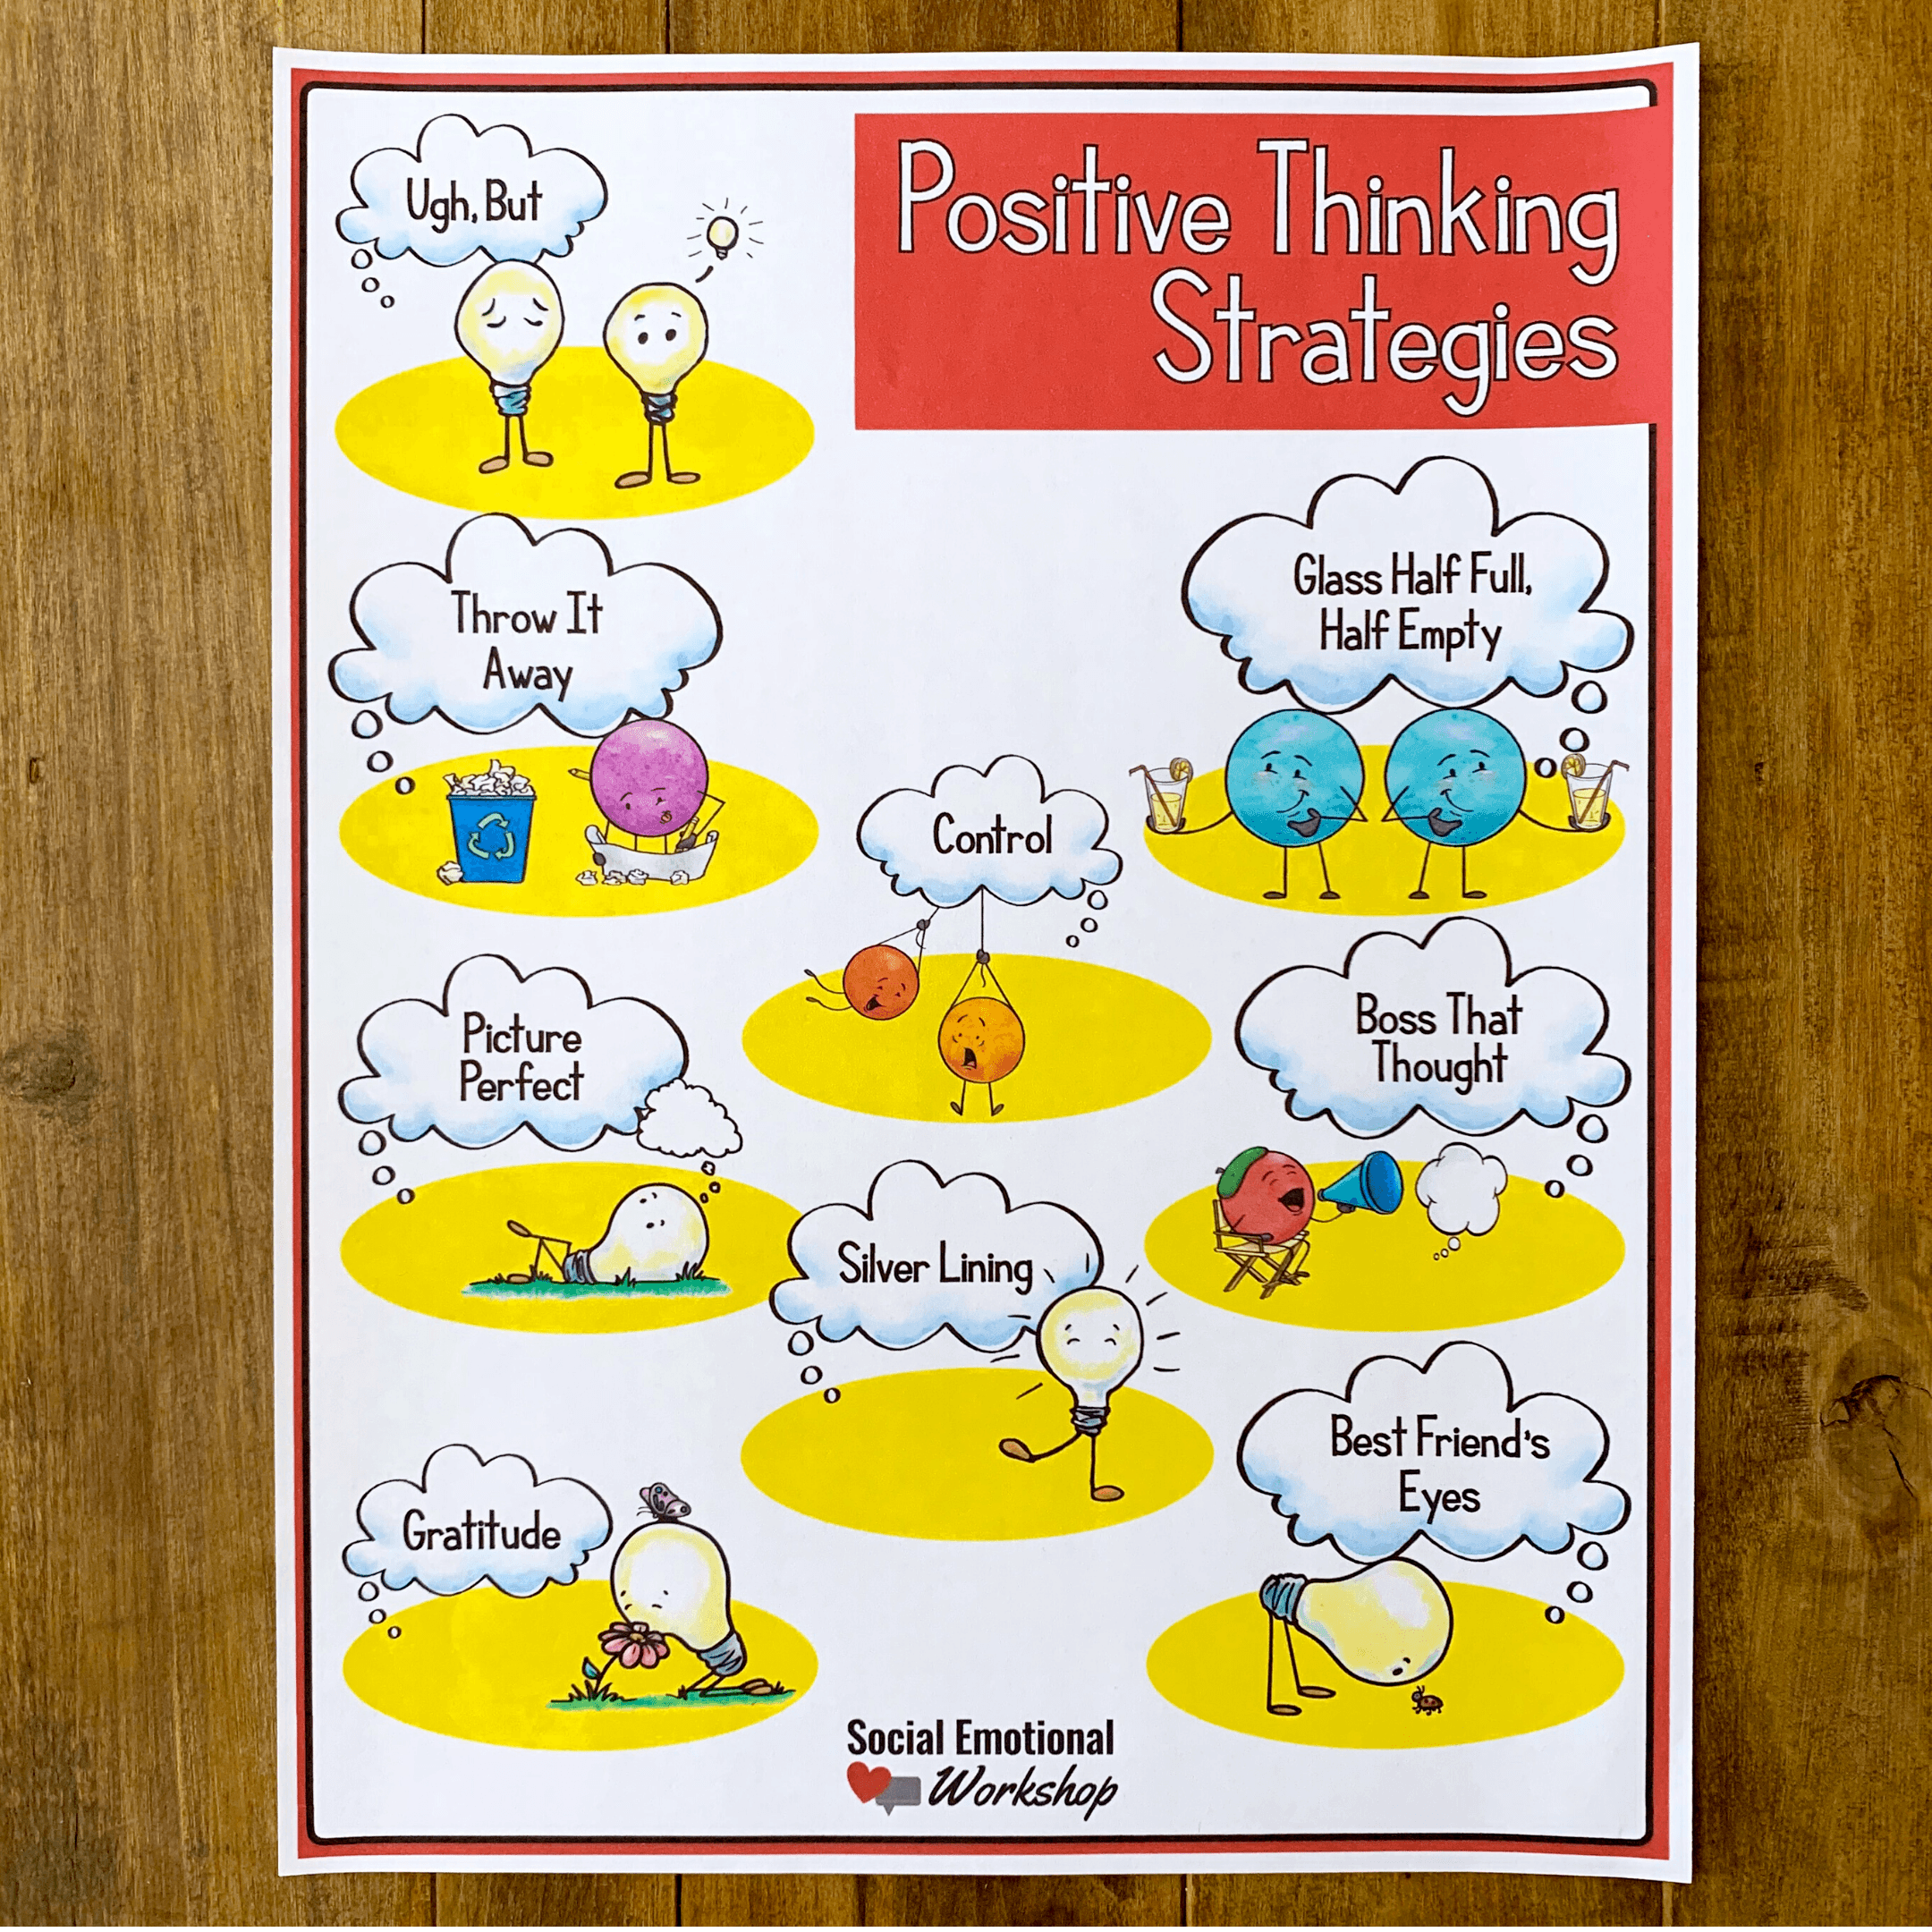 Positive Thinking Strategies poster